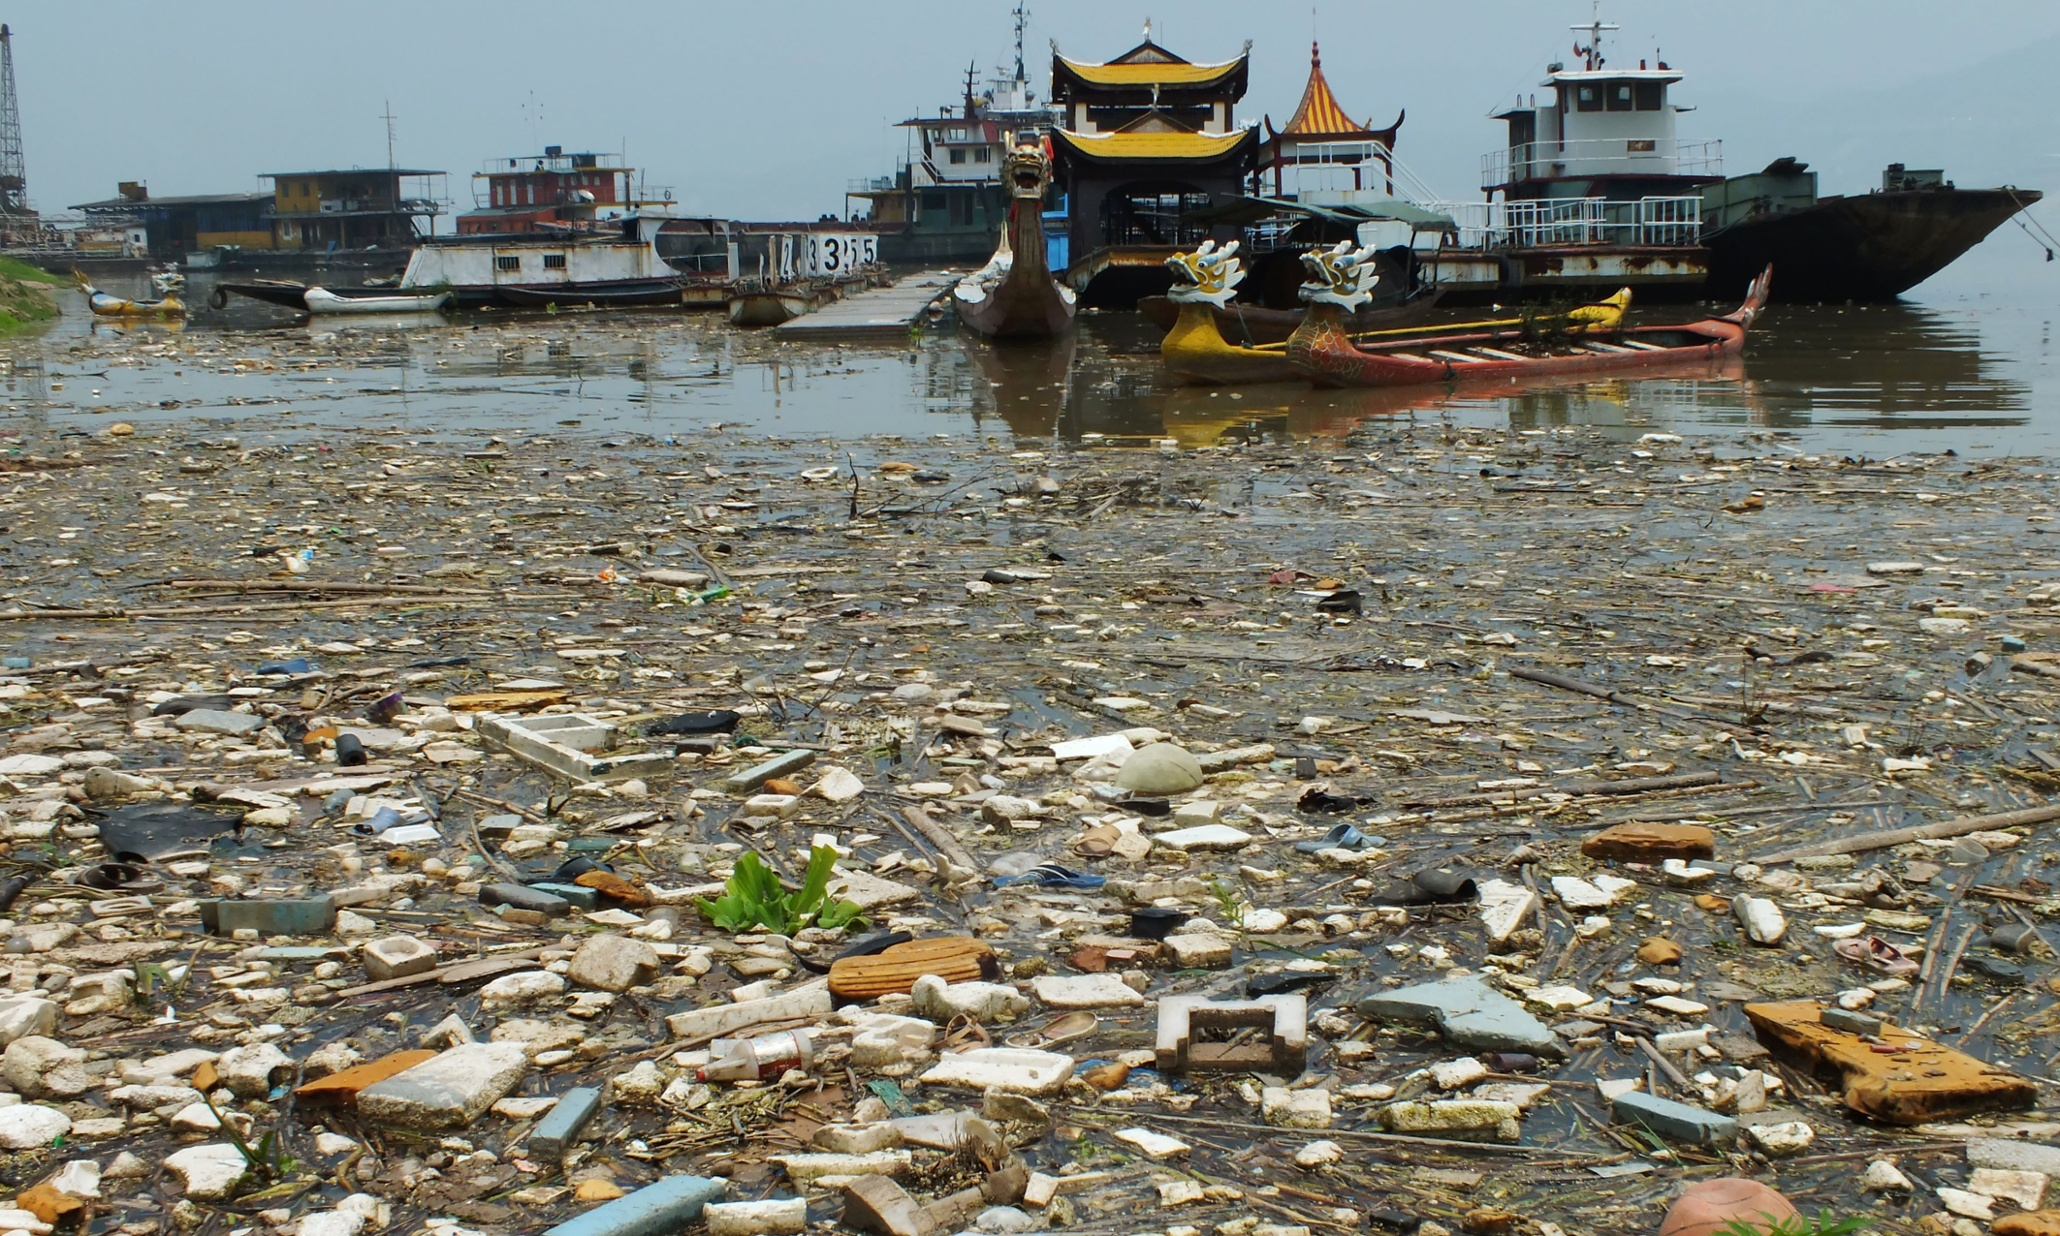 river pollution in malaysia essay On a larger scale, consider speaking up against industries that dump waste into local streams, rivers, and beach fronts to reduce water pollution in your.